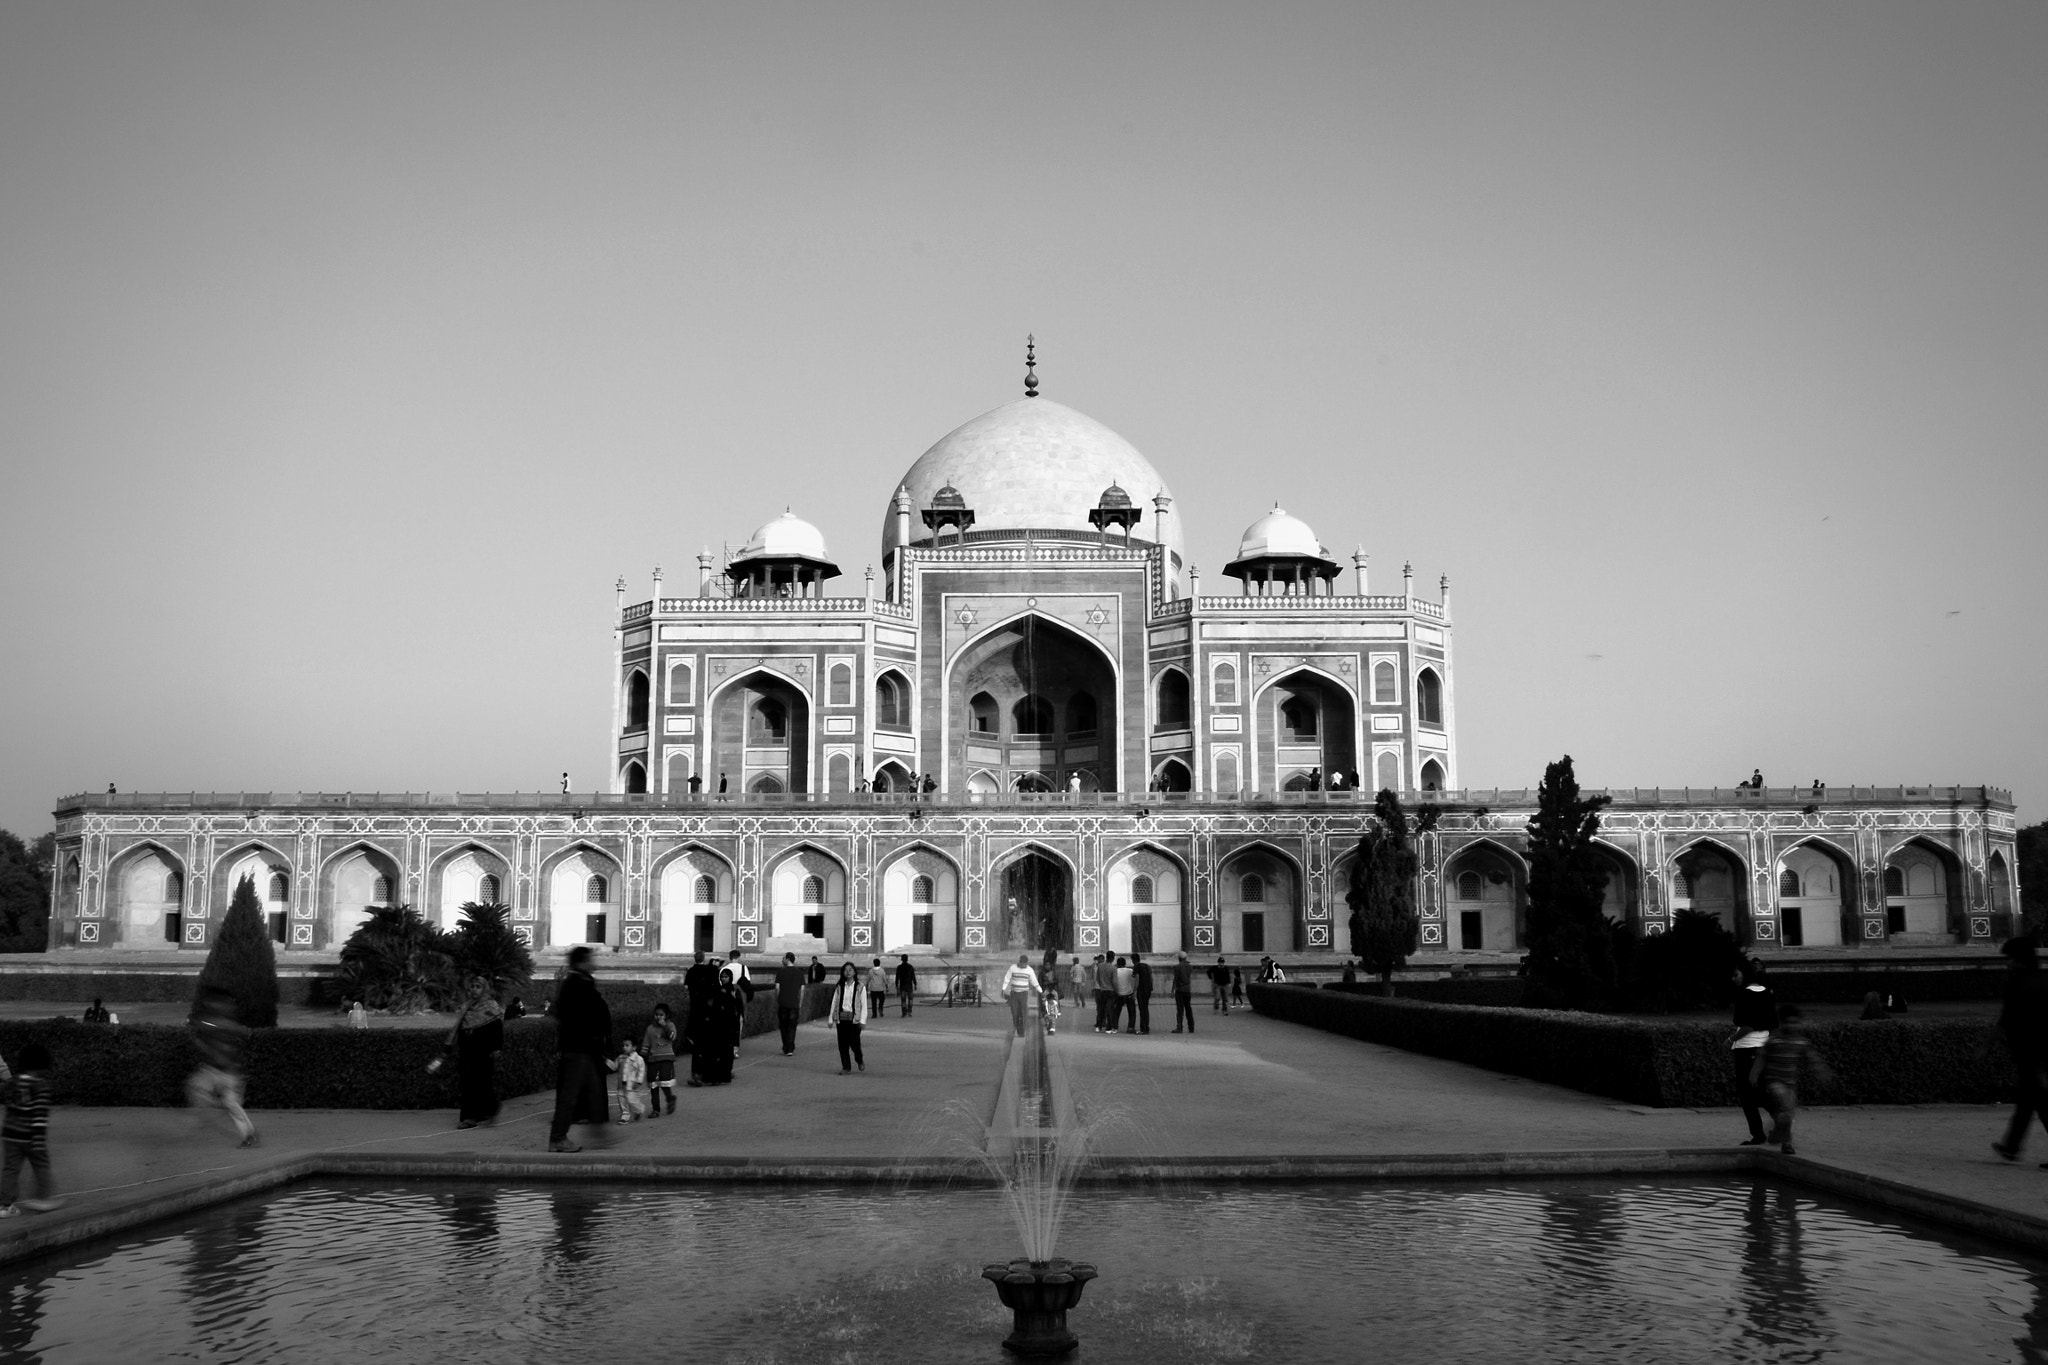 Photograph Humayun's tomb by Bikalpa Pandey on 500px